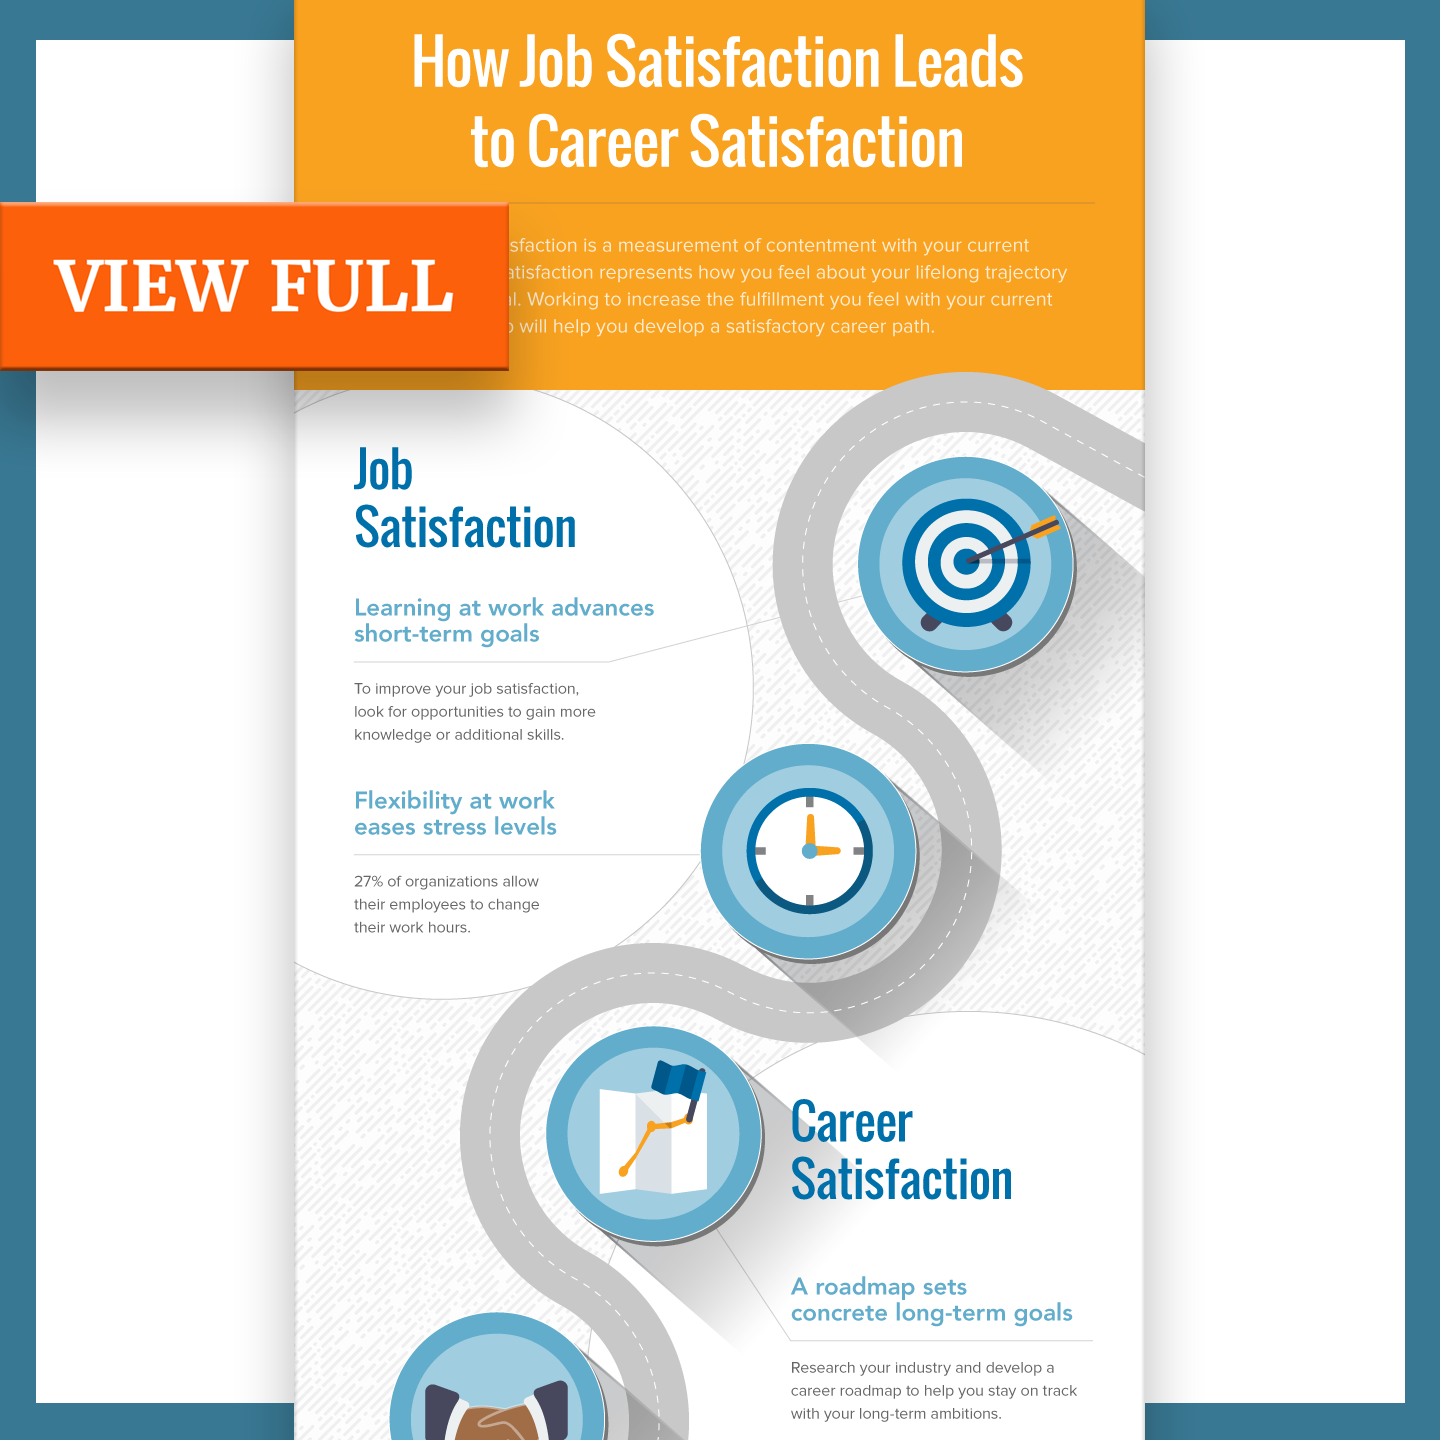 A staffing industry infographic from the portfolio of marketing writer Alexander Santo.